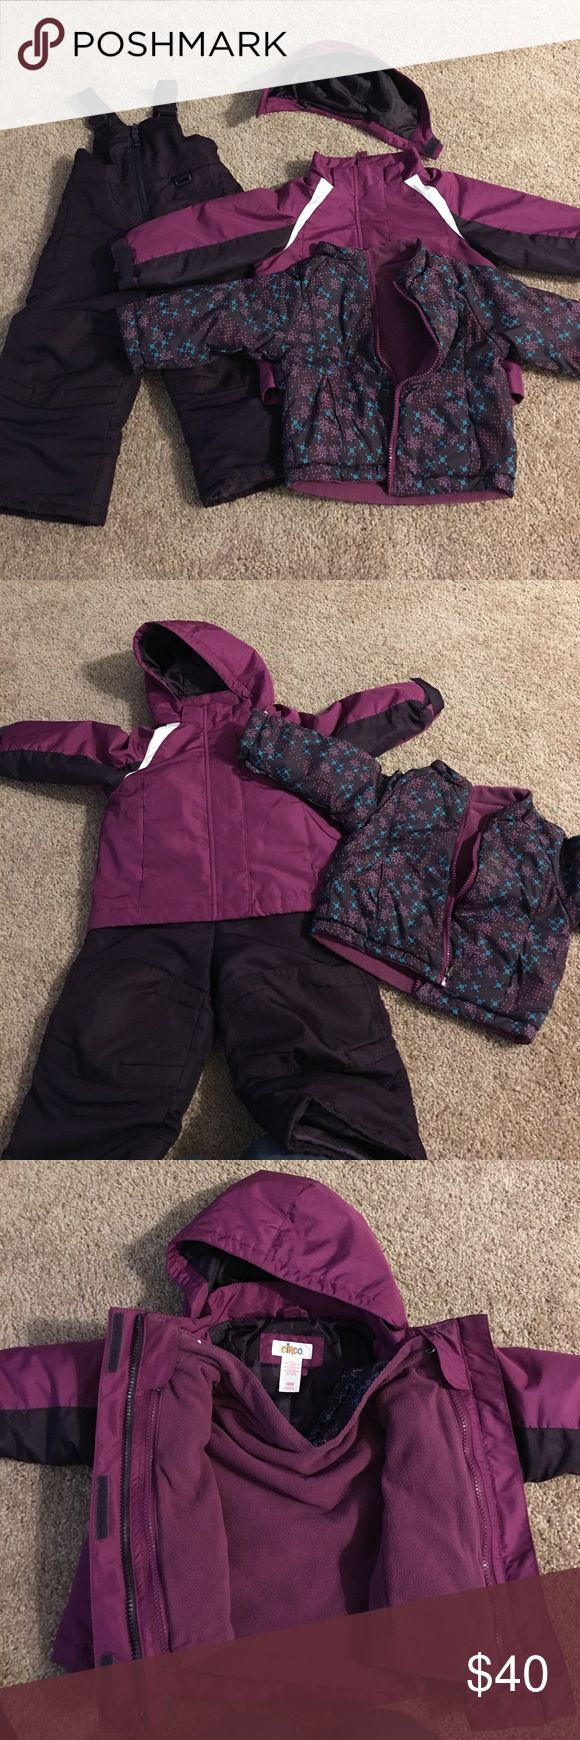 Circo 18mnth snow suit 3 piece ! MAKE OFFER. !So nice and warm ! Removable hood and fleece liner we loved it only wore a couple times though due to her growth spurt .!  Spring jacket fleece jacket plus snow pants or really warm winter coat I love three piece sets.  Make offer Circo Jackets & Coats